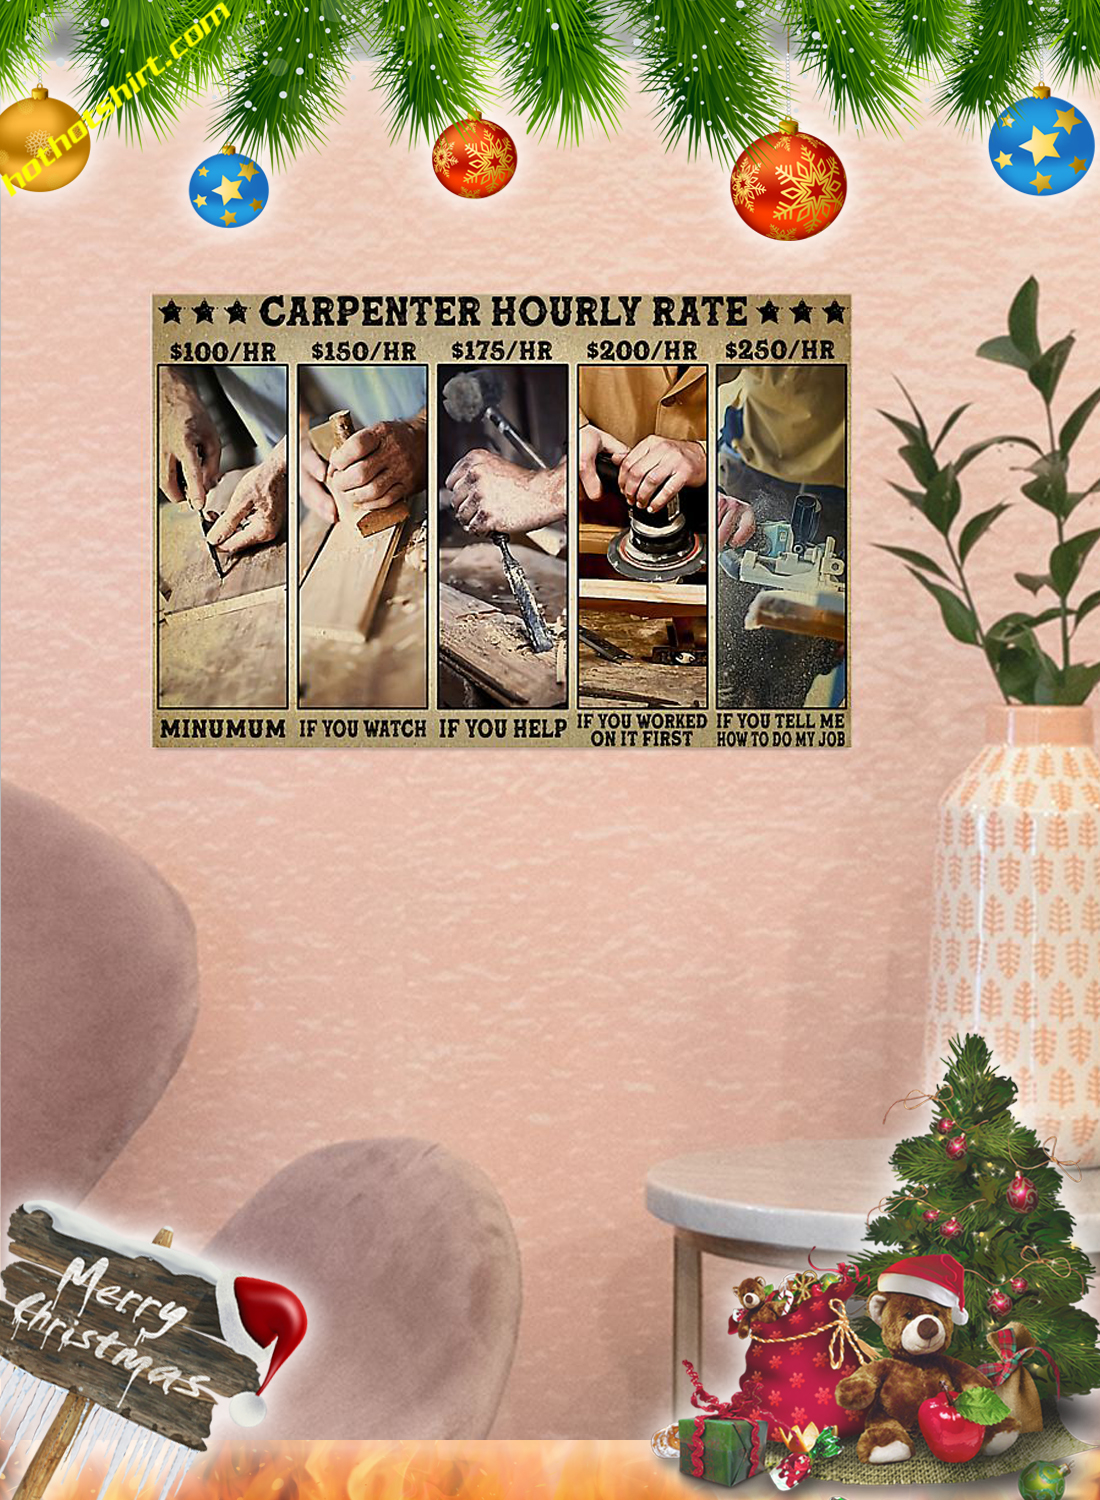 Carpenter hourly rate poster 2